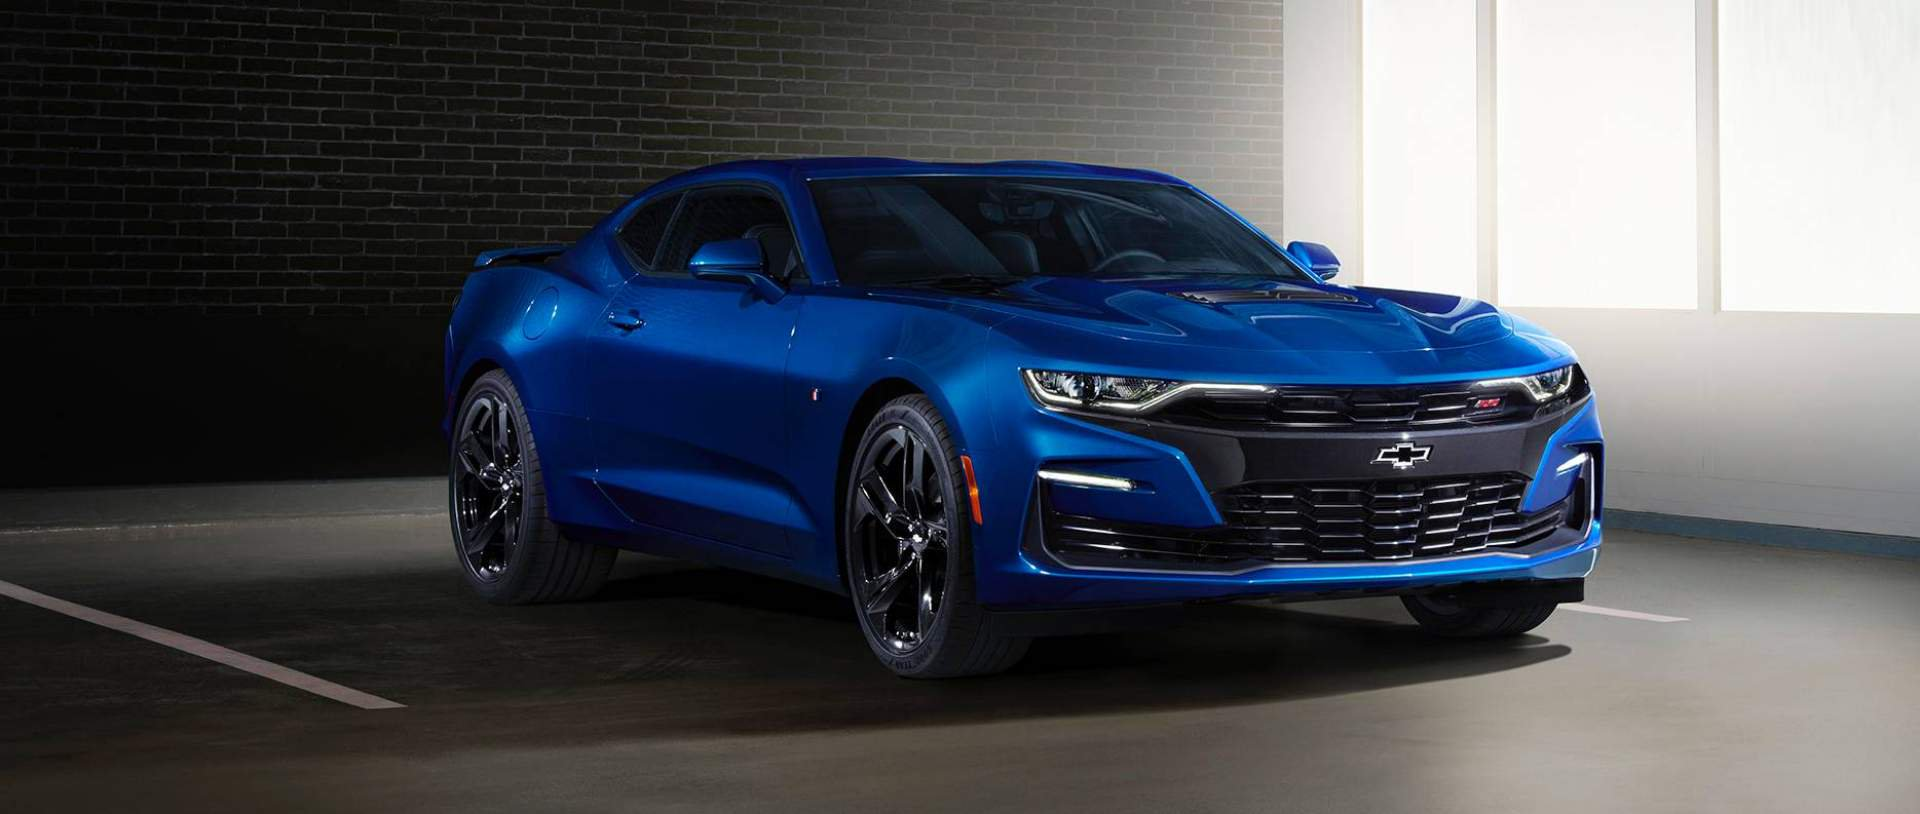 83 A 2020 The All Chevy Camaro Ratings